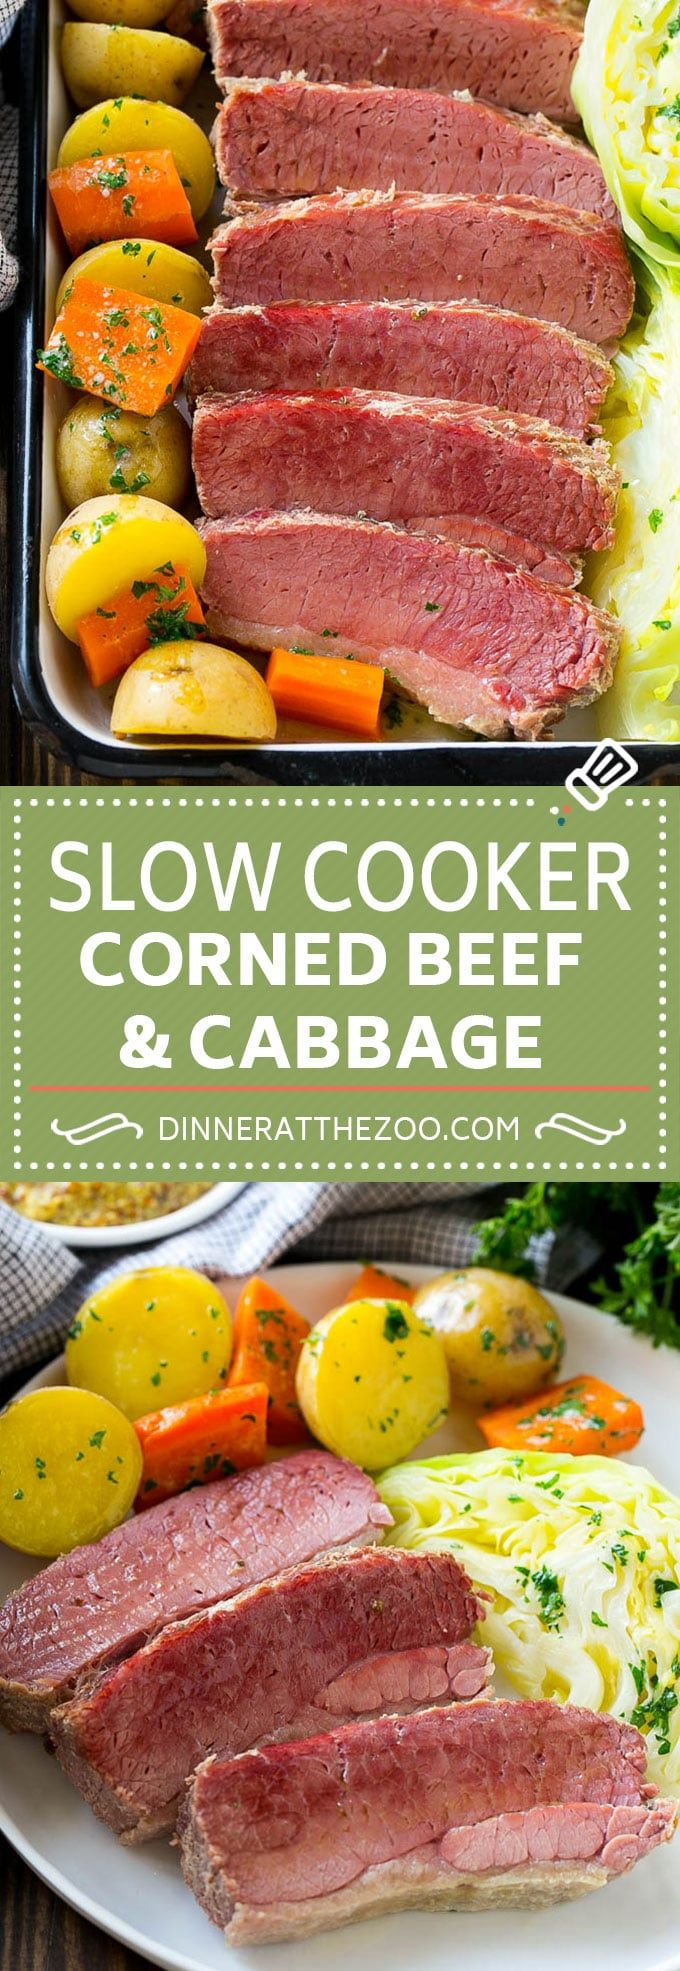 Slow Cooker Corned Beef and Cabbage | Crock Pot Corned Beef | St. Patrick's Day Corned Beef